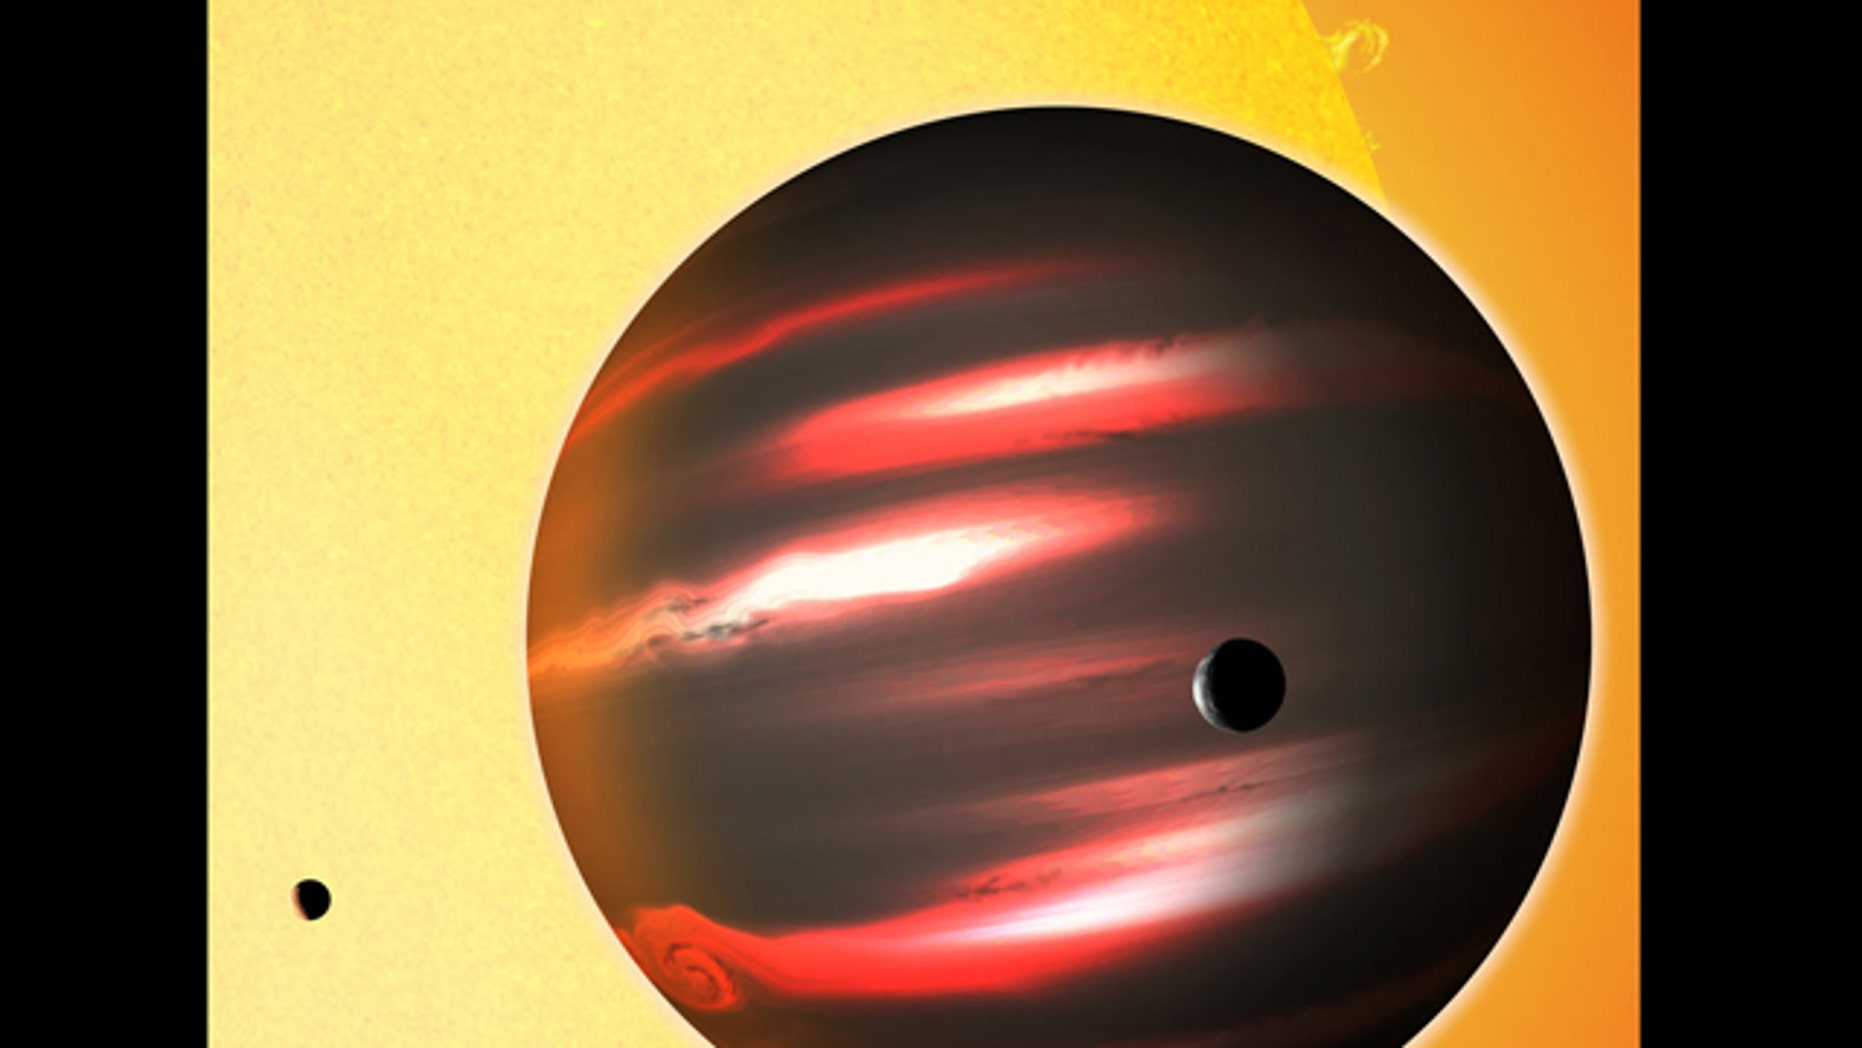 The distant exoplanet TrES-2b, shown here in an artist's conception, is darker than the blackest coal. This Jupiter-sized world reflects less than one percent of the light that falls on it, making it blacker than any planet or moon in our solar system.